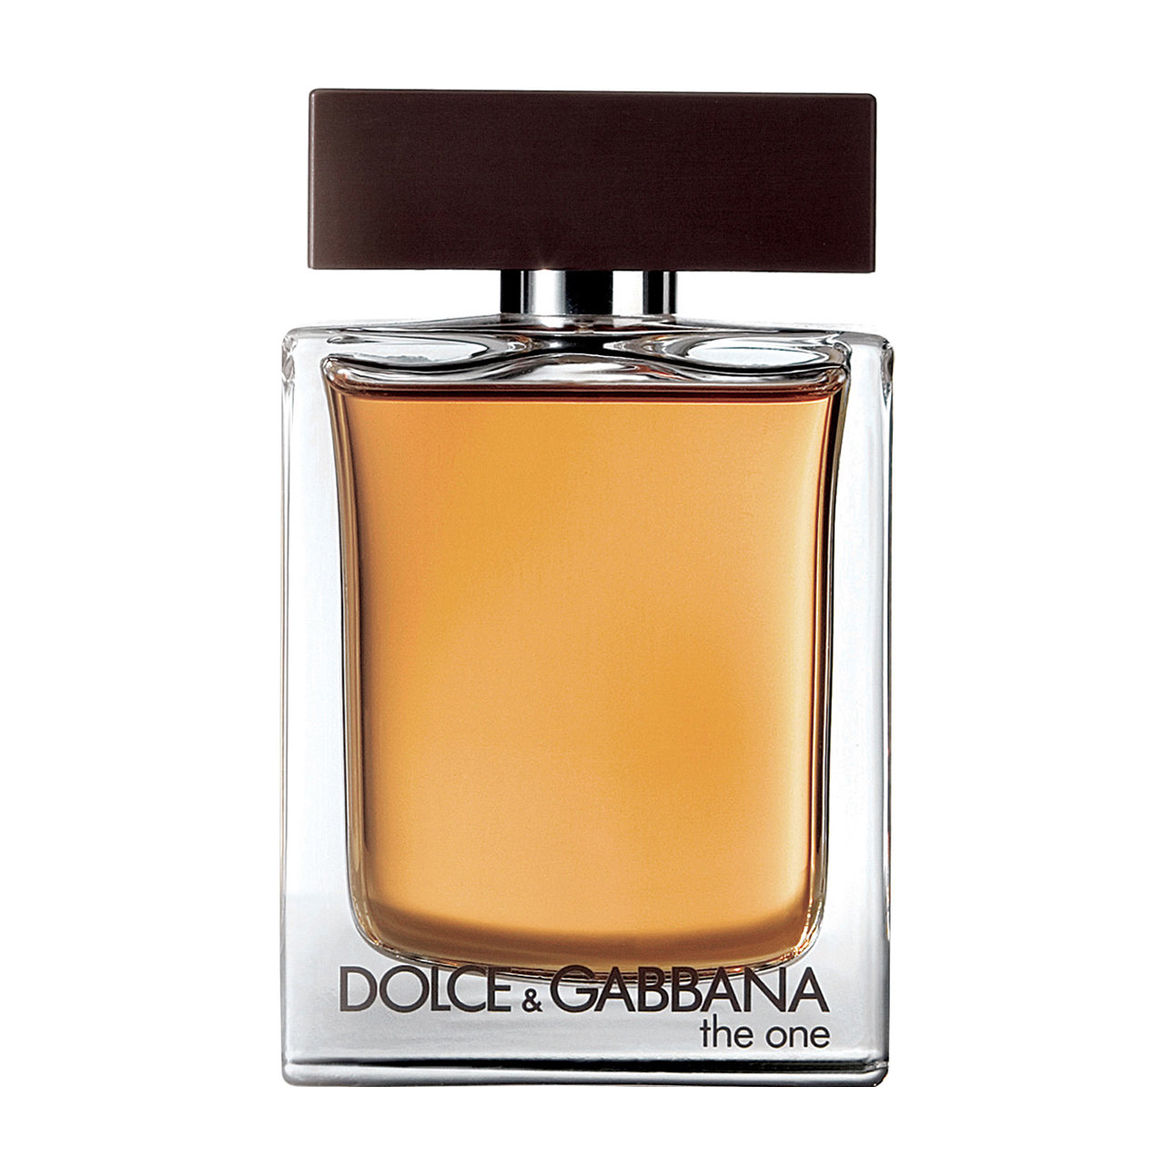 Fragrance Dolce and Gabbana The One Eau de Toilette